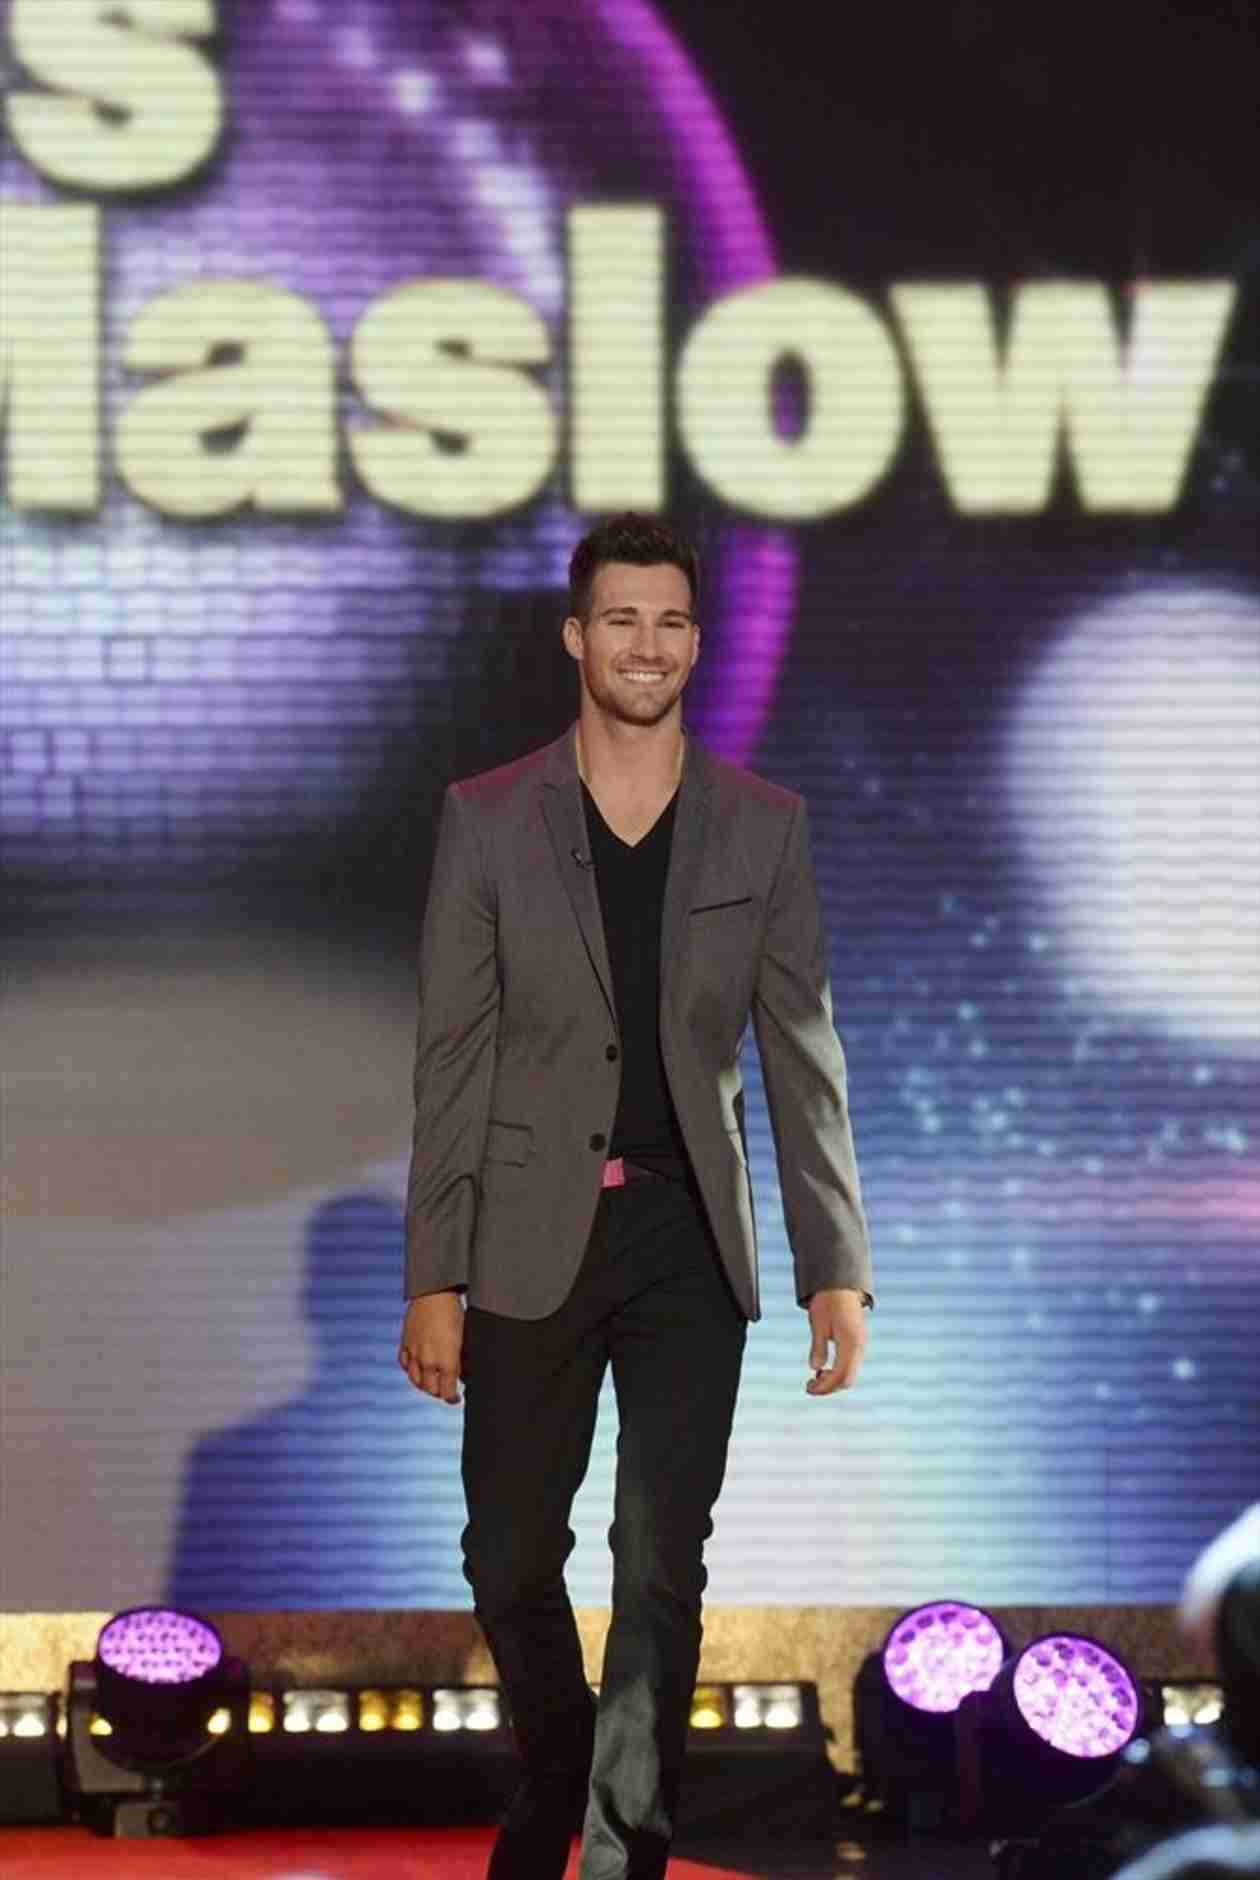 Dancing With the Stars 2014: James Maslow and Cheryl Burke's Week 4 Tango (VIDEO)